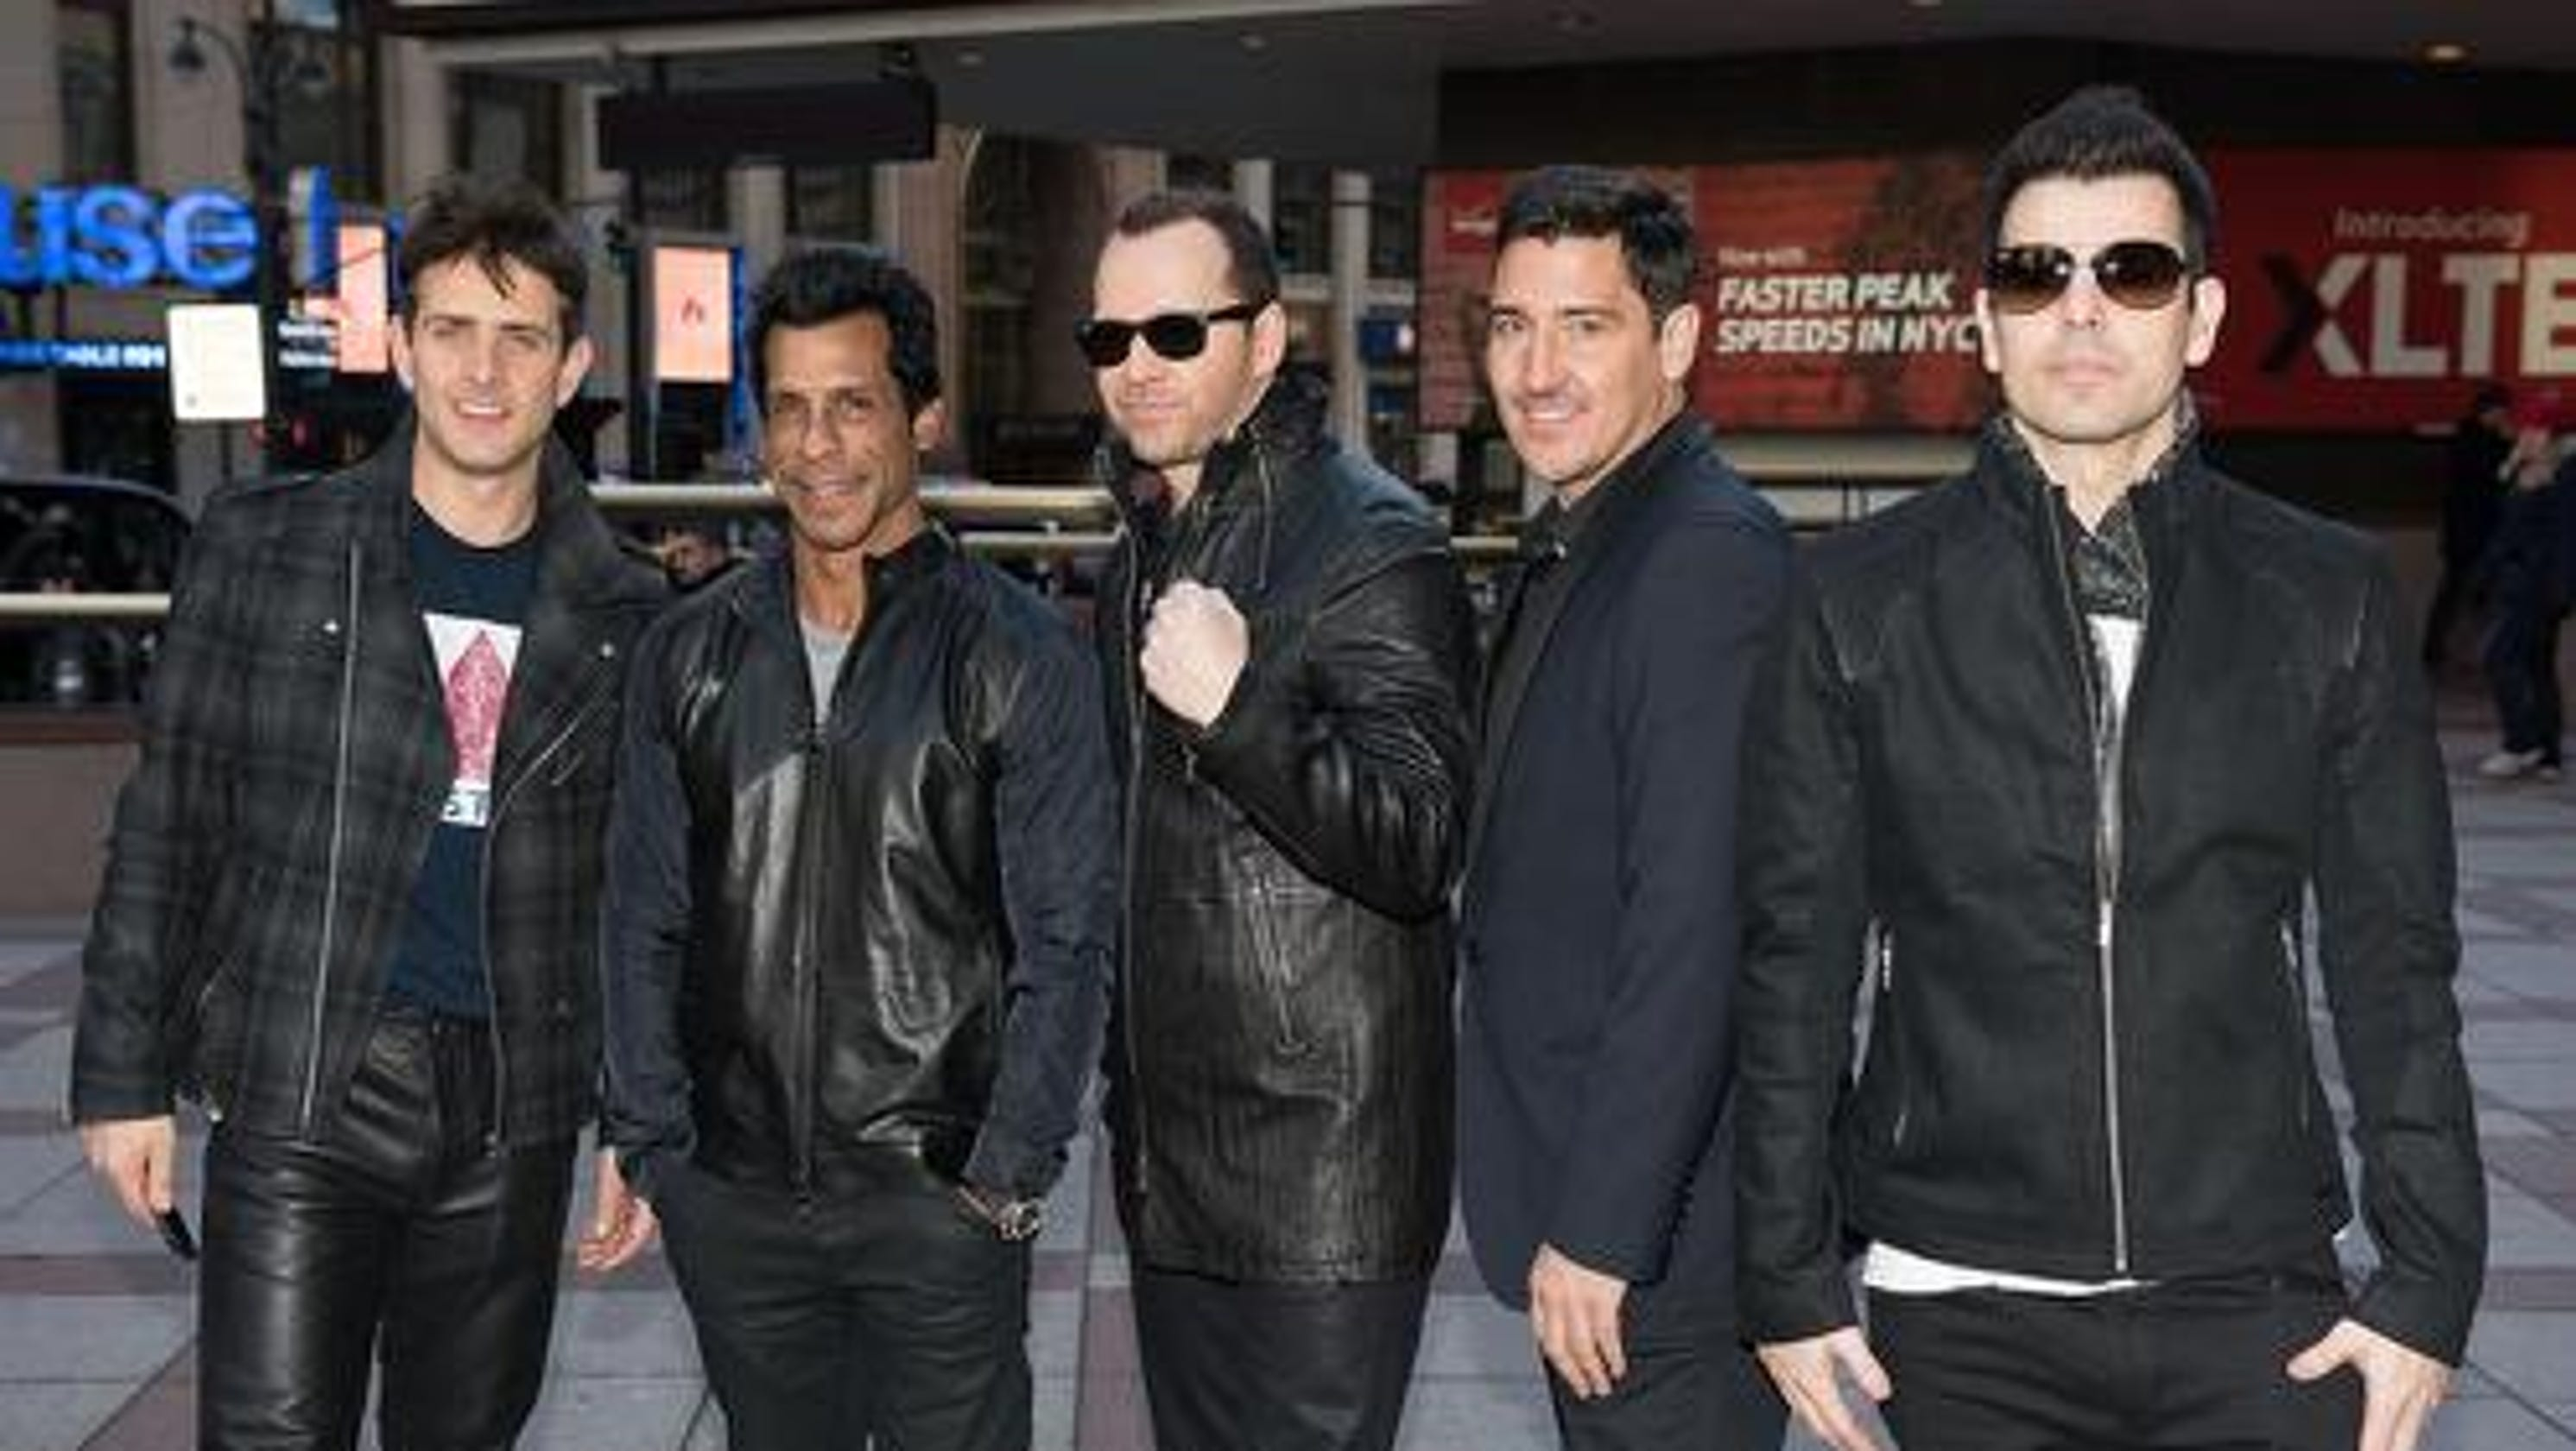 The New Kids on the Block to be in Hershey in summer of 2019